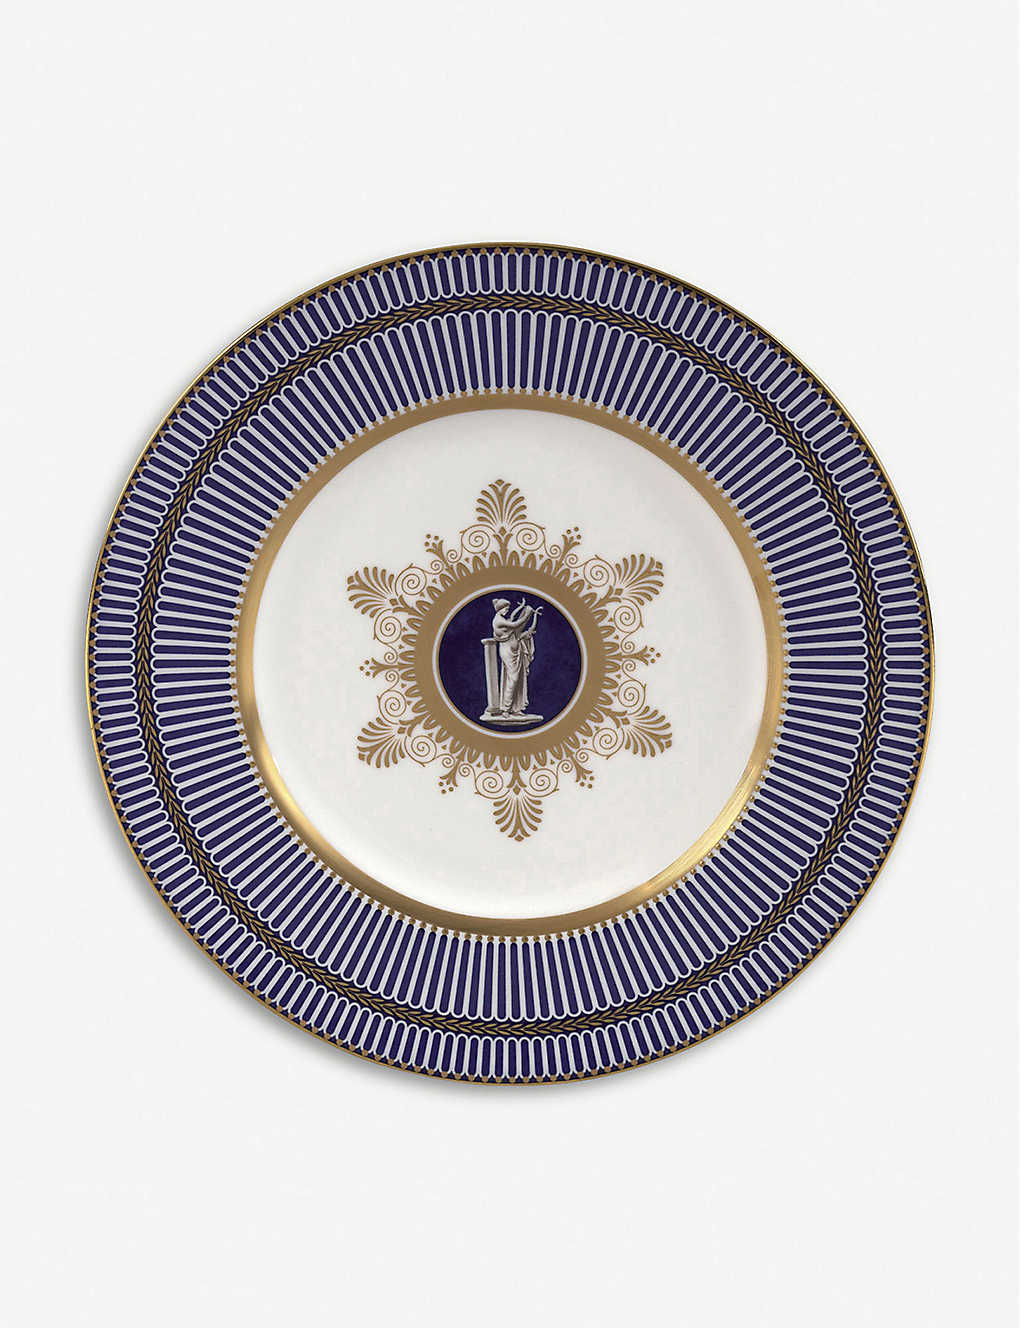 WEDGWOOD: Anthemion Blue Plate 23cm